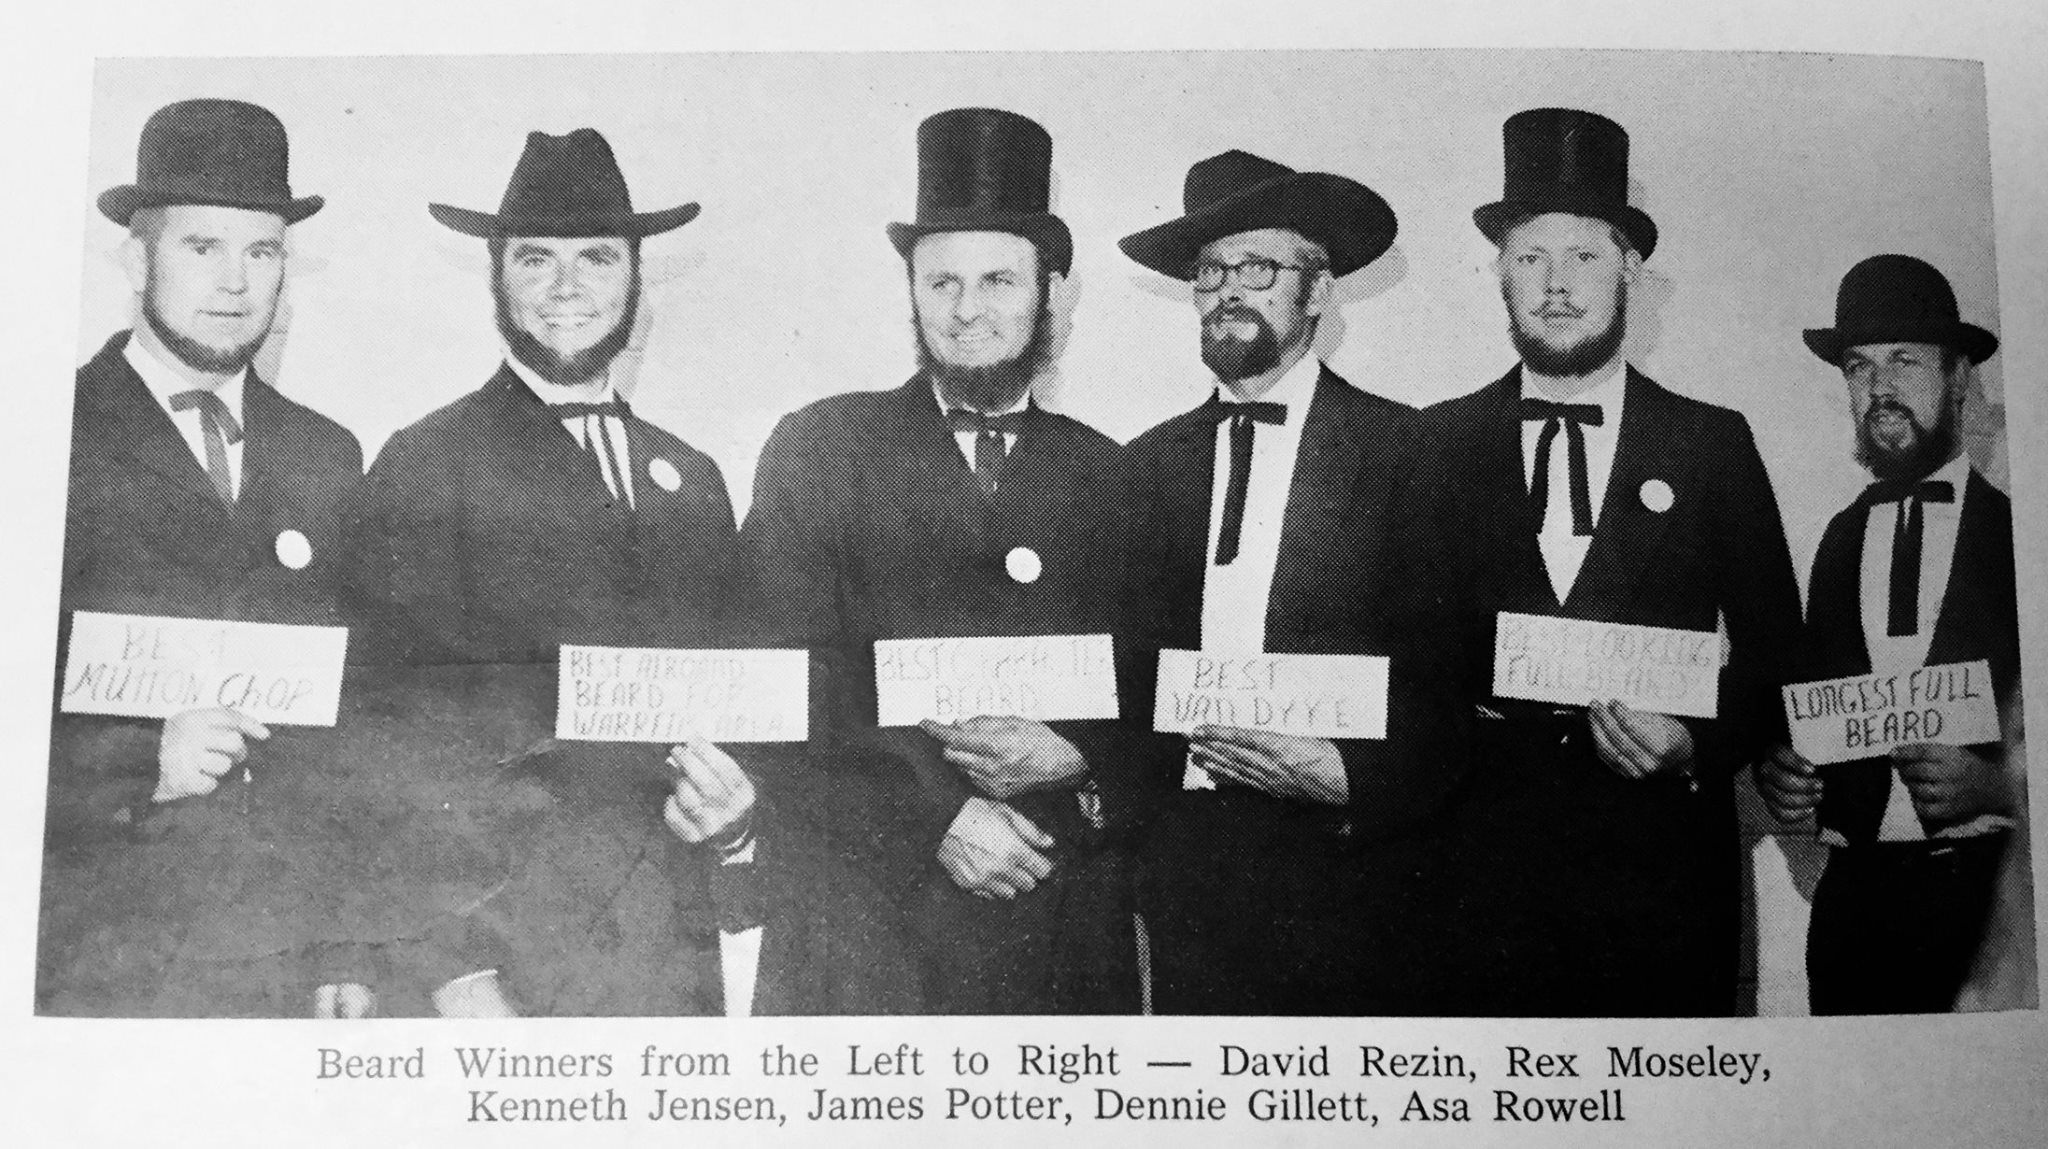 Here is a picture from the Cranfest Beard Contest many moons ago! I hope people dress in suits and hats this year too!